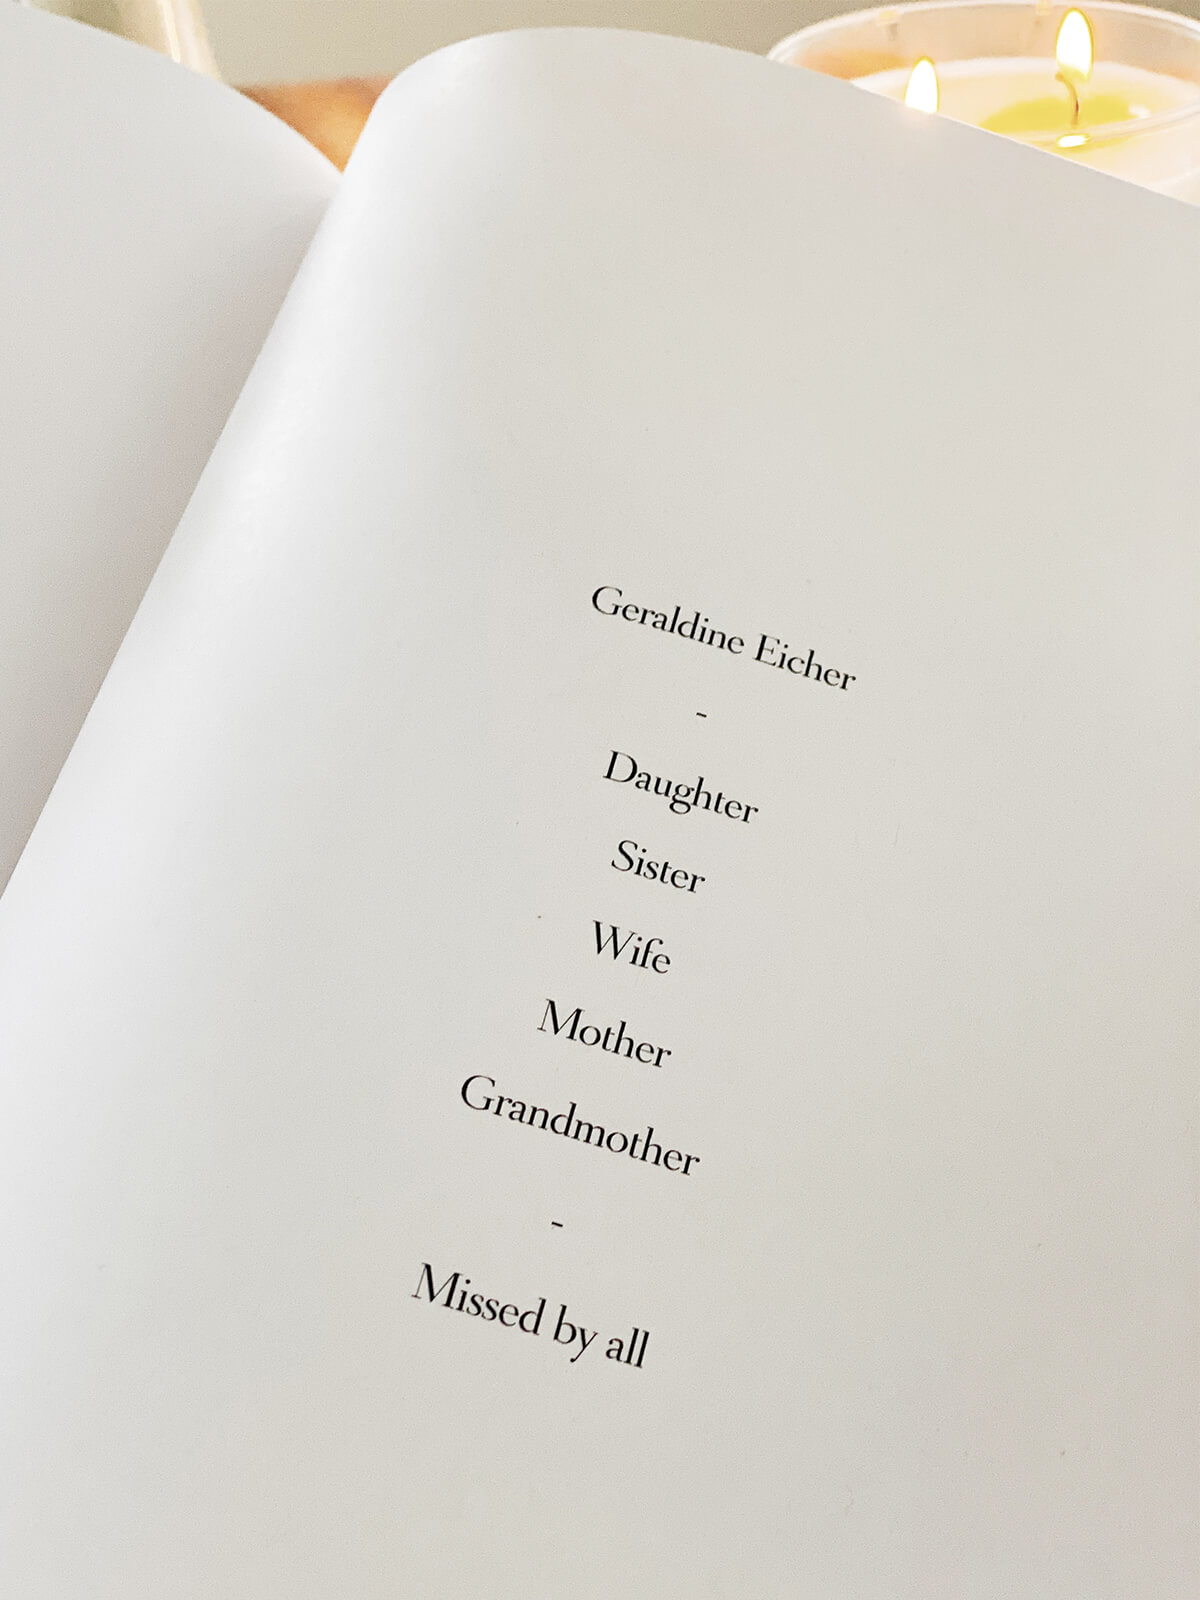 photo book dedication page